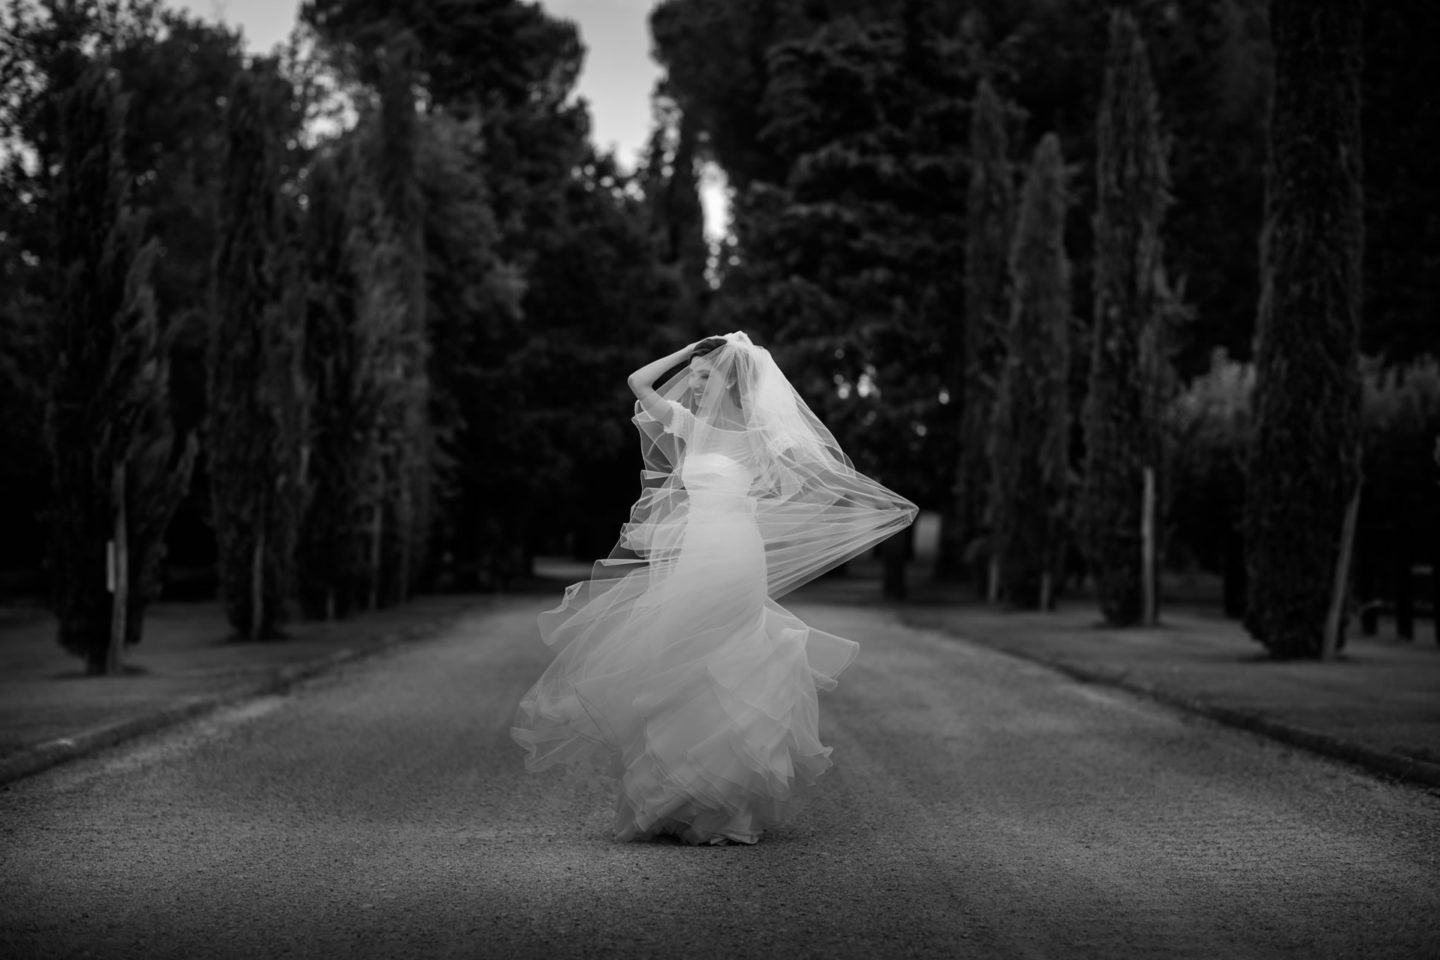 Dance :: Amazing wedding day at Il Borro :: Luxury wedding photography - 31 :: Dance